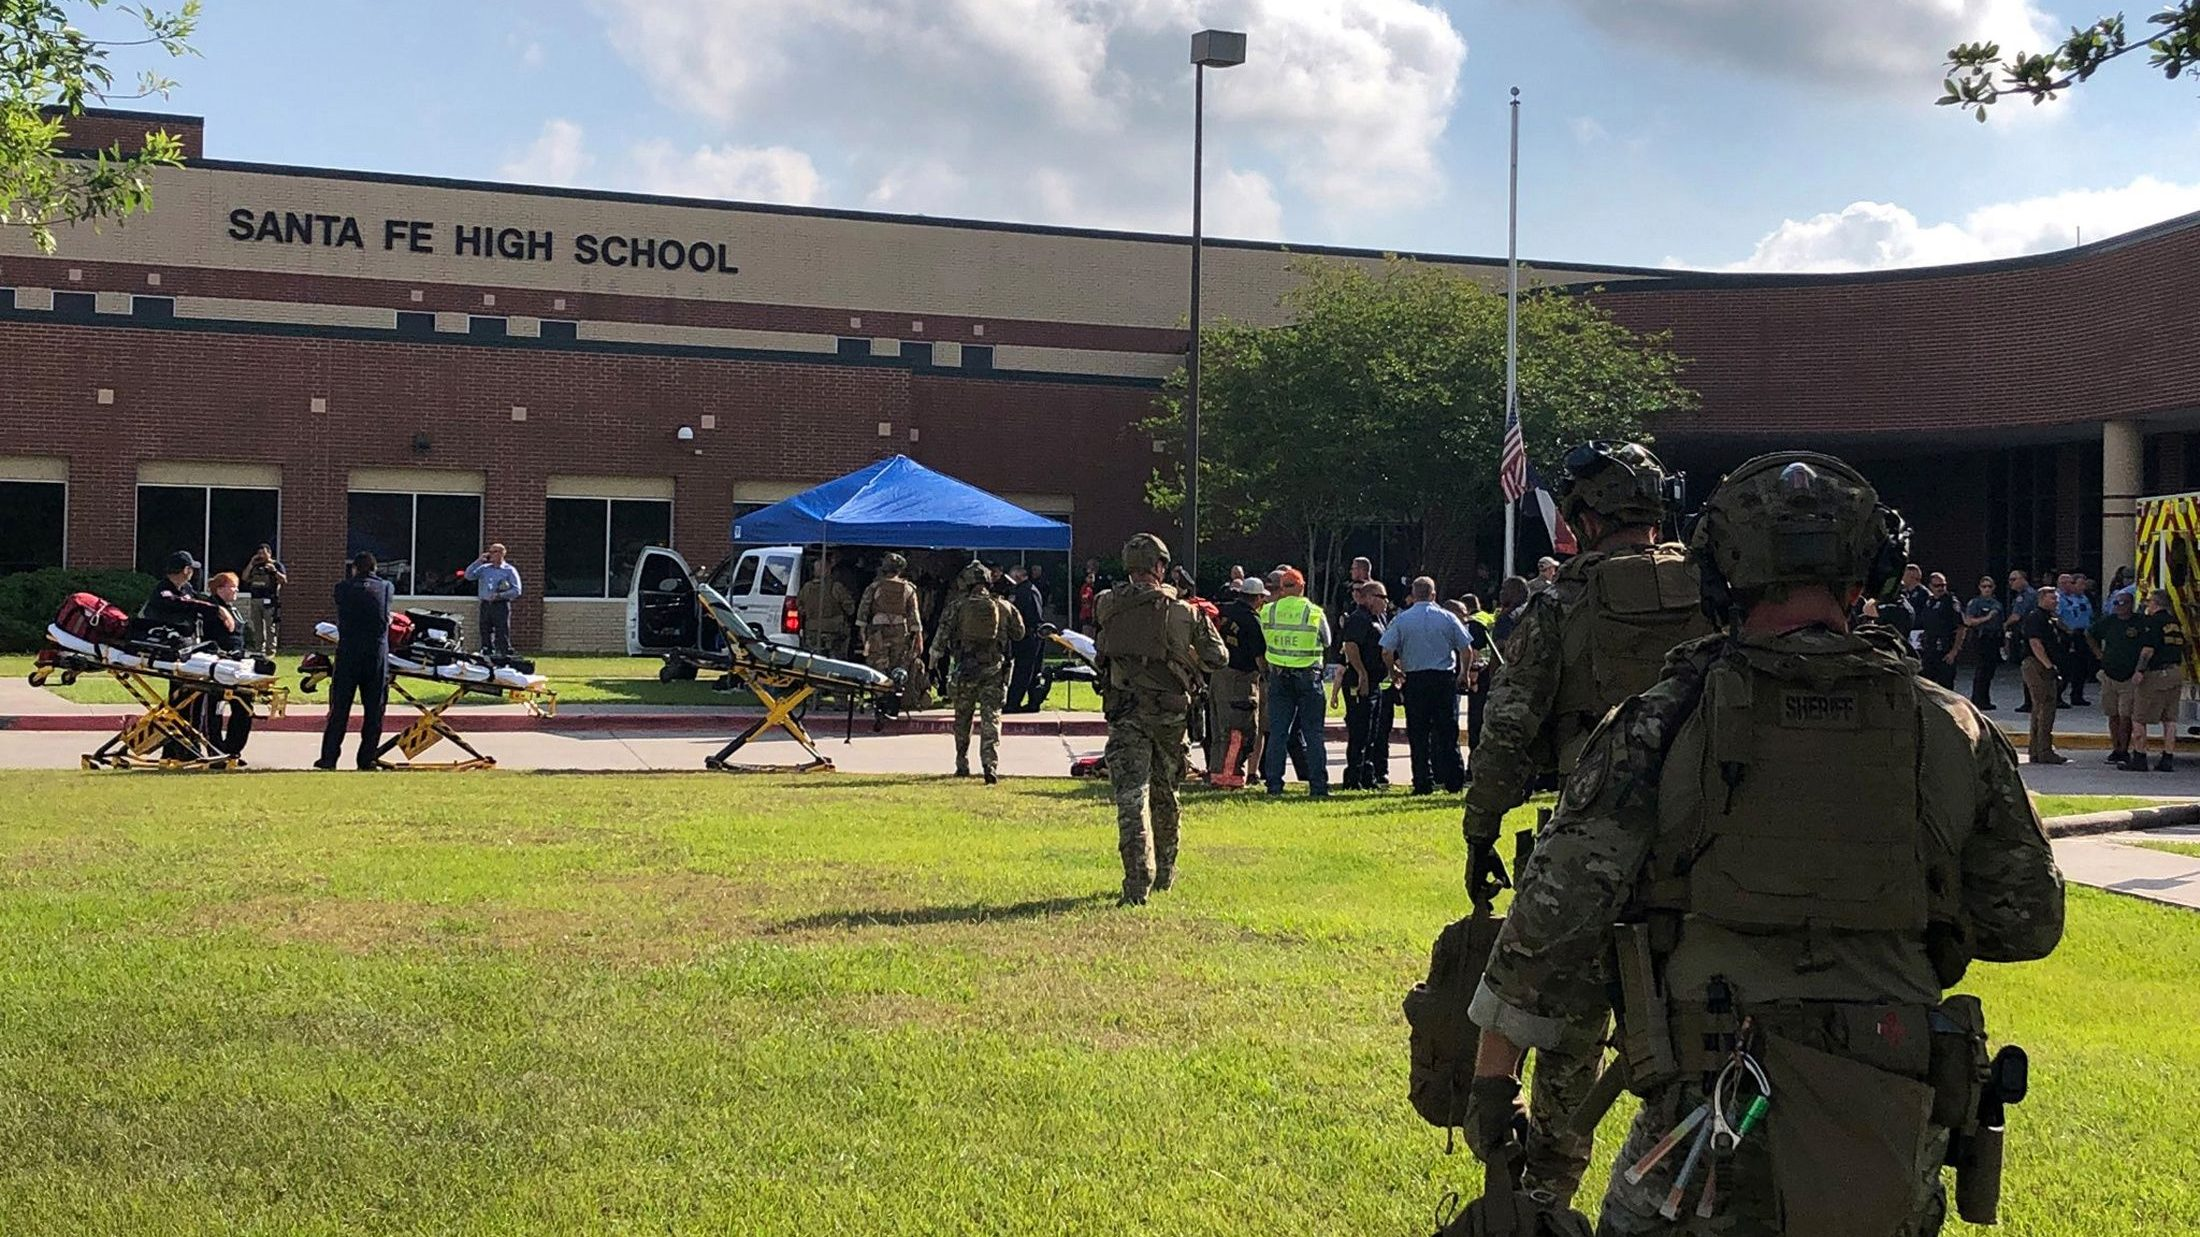 Law enforcement officers are responding to Santa Fe High School following a shooting incident